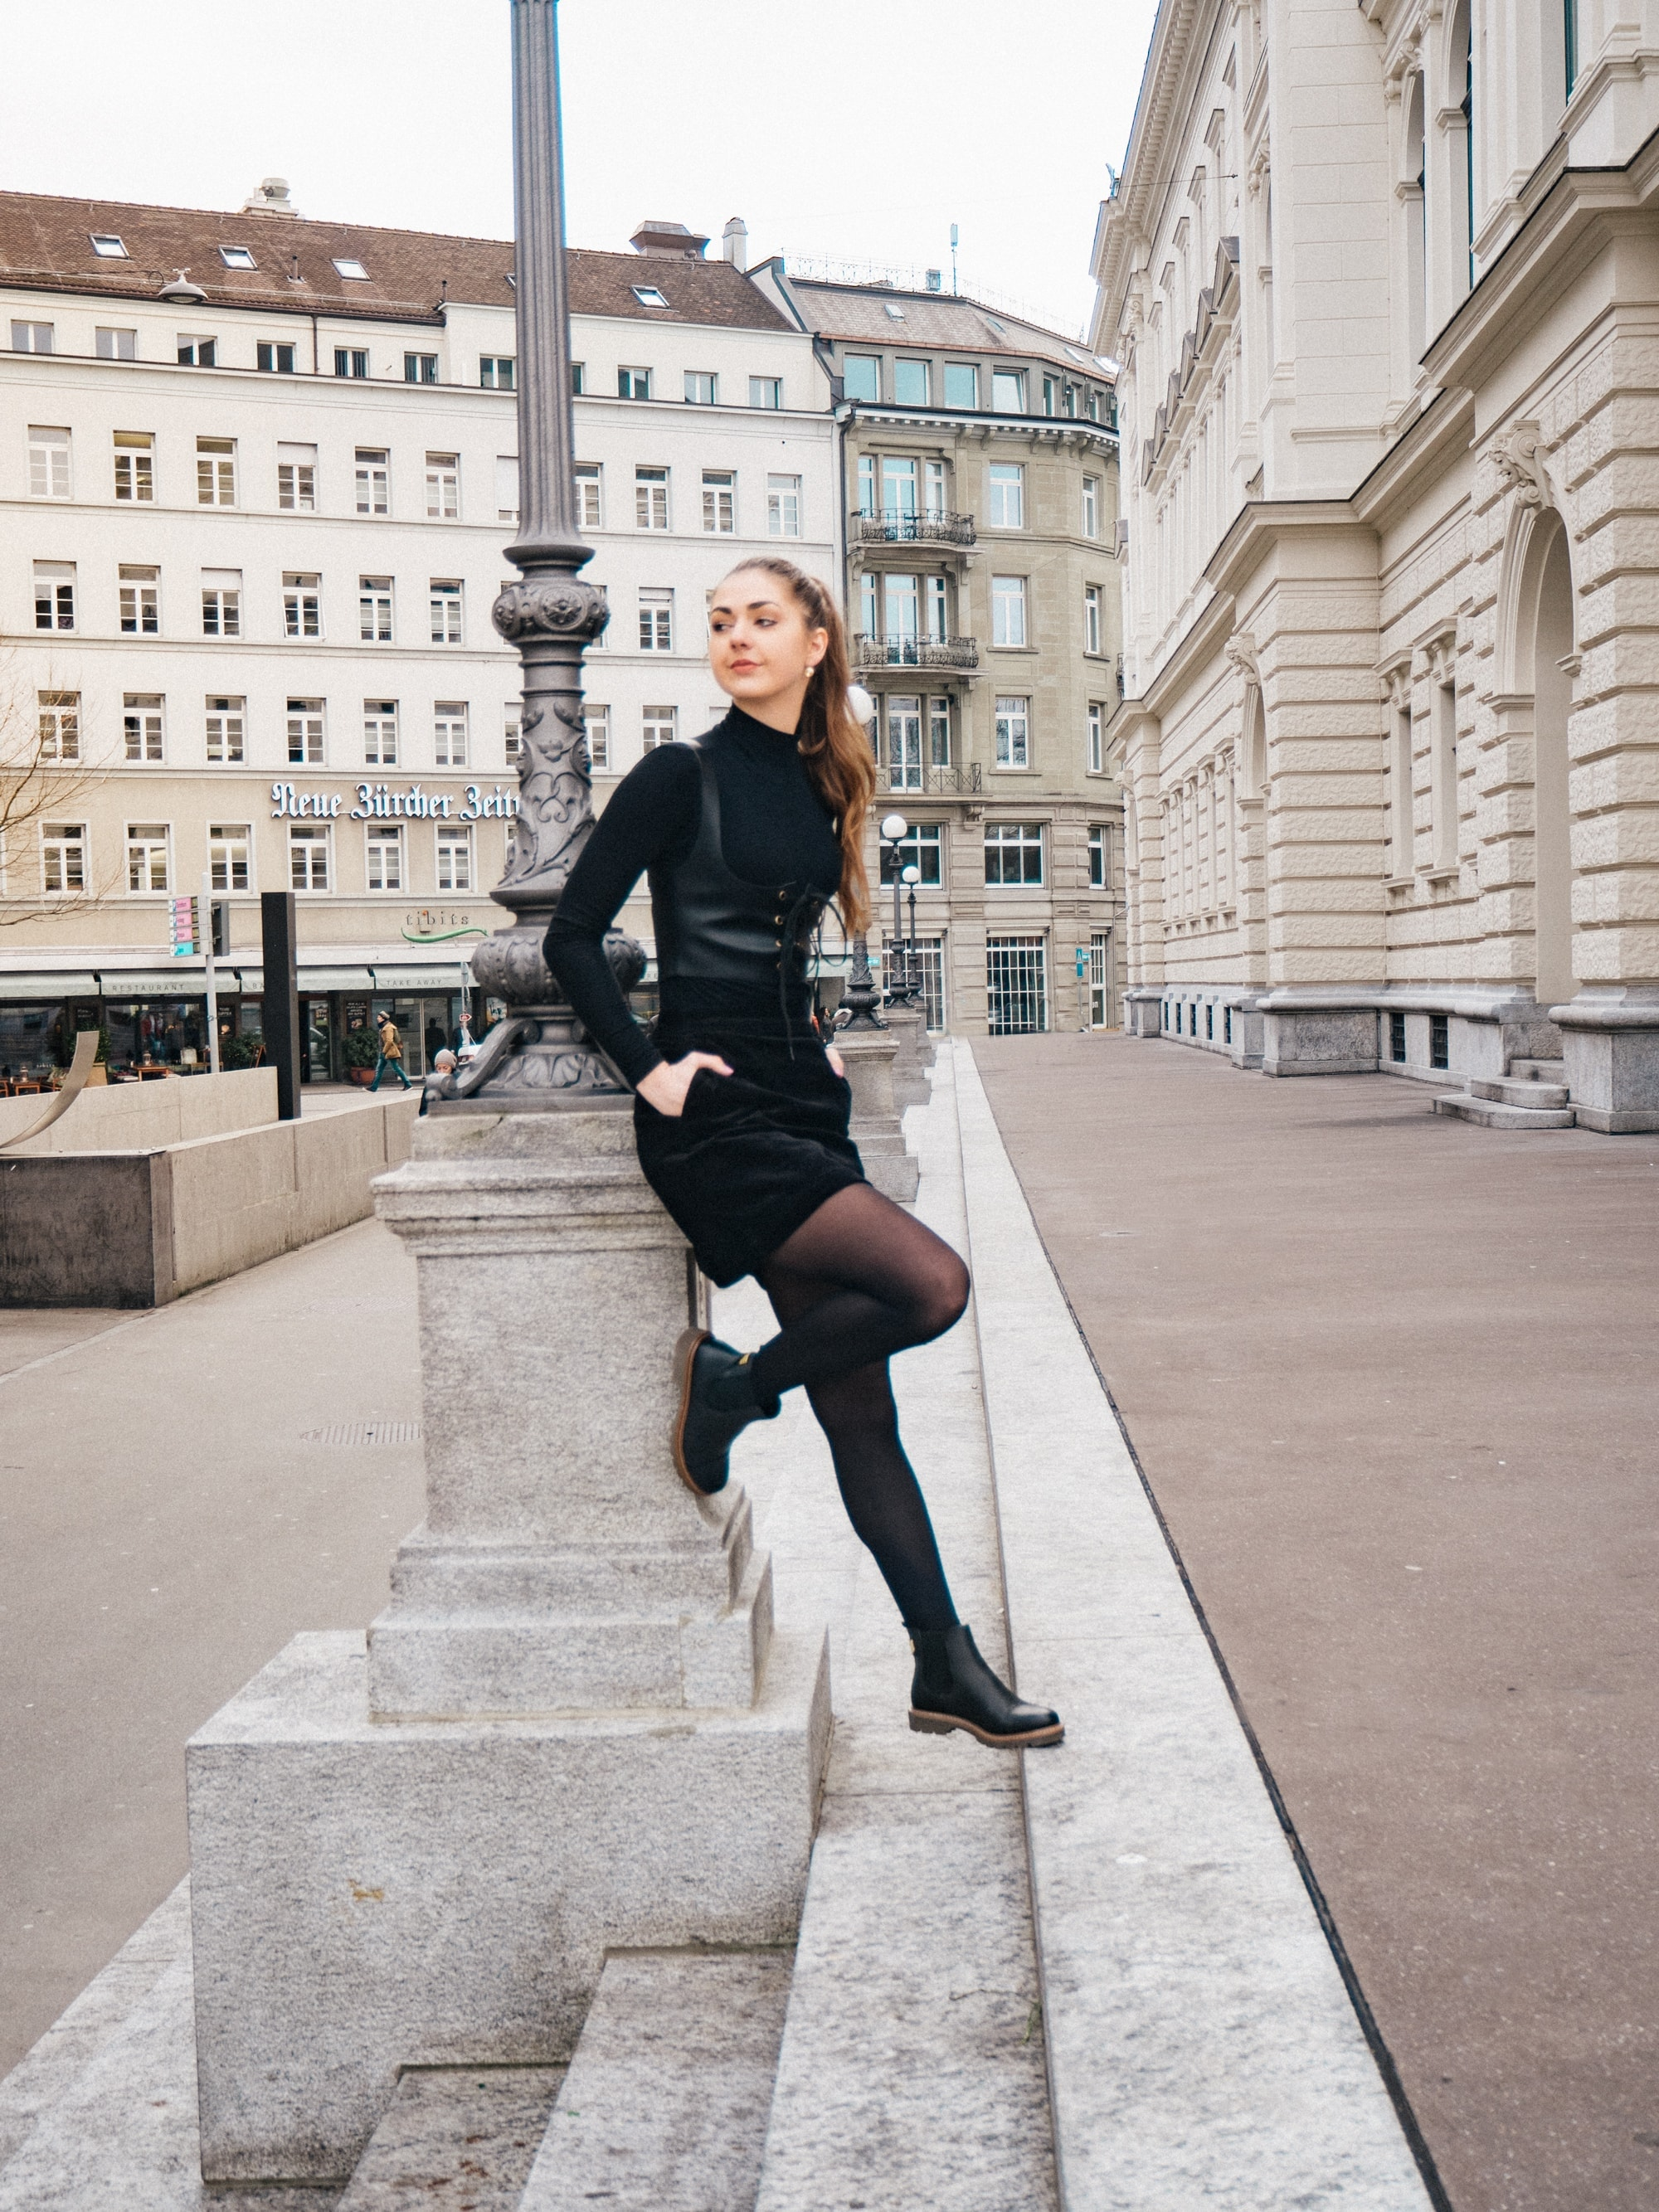 All black, Outfit, Embroidery, Tights, FW18, SS18, Corset, Corduroy, Ankle Boots, Black Boots, OOTD, Fashion, Fashion Blog, Fashion Magazine, Editorial, Fashion Editorial, Zurich, Ponytail, Classics, Frida Kahlo, Kahlo